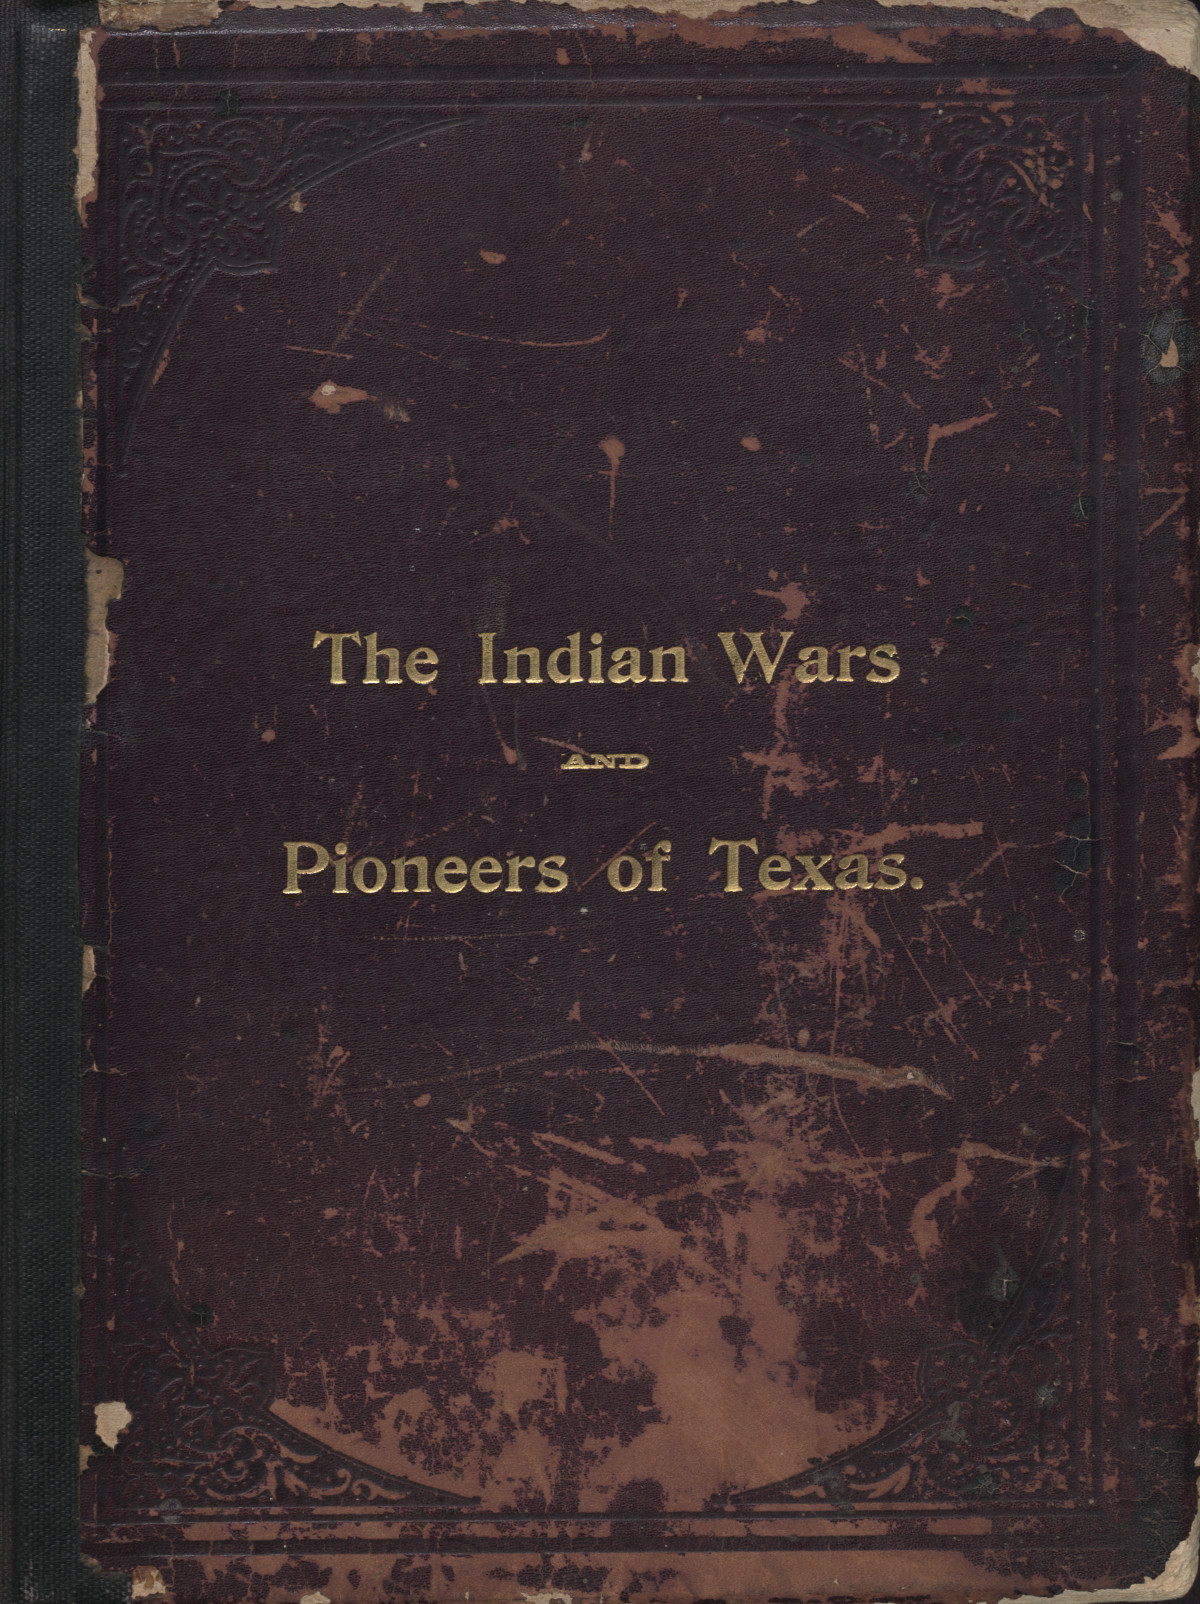 Indian wars and pioneers of Texas                                                                                                      [Sequence #]: 1 of 894